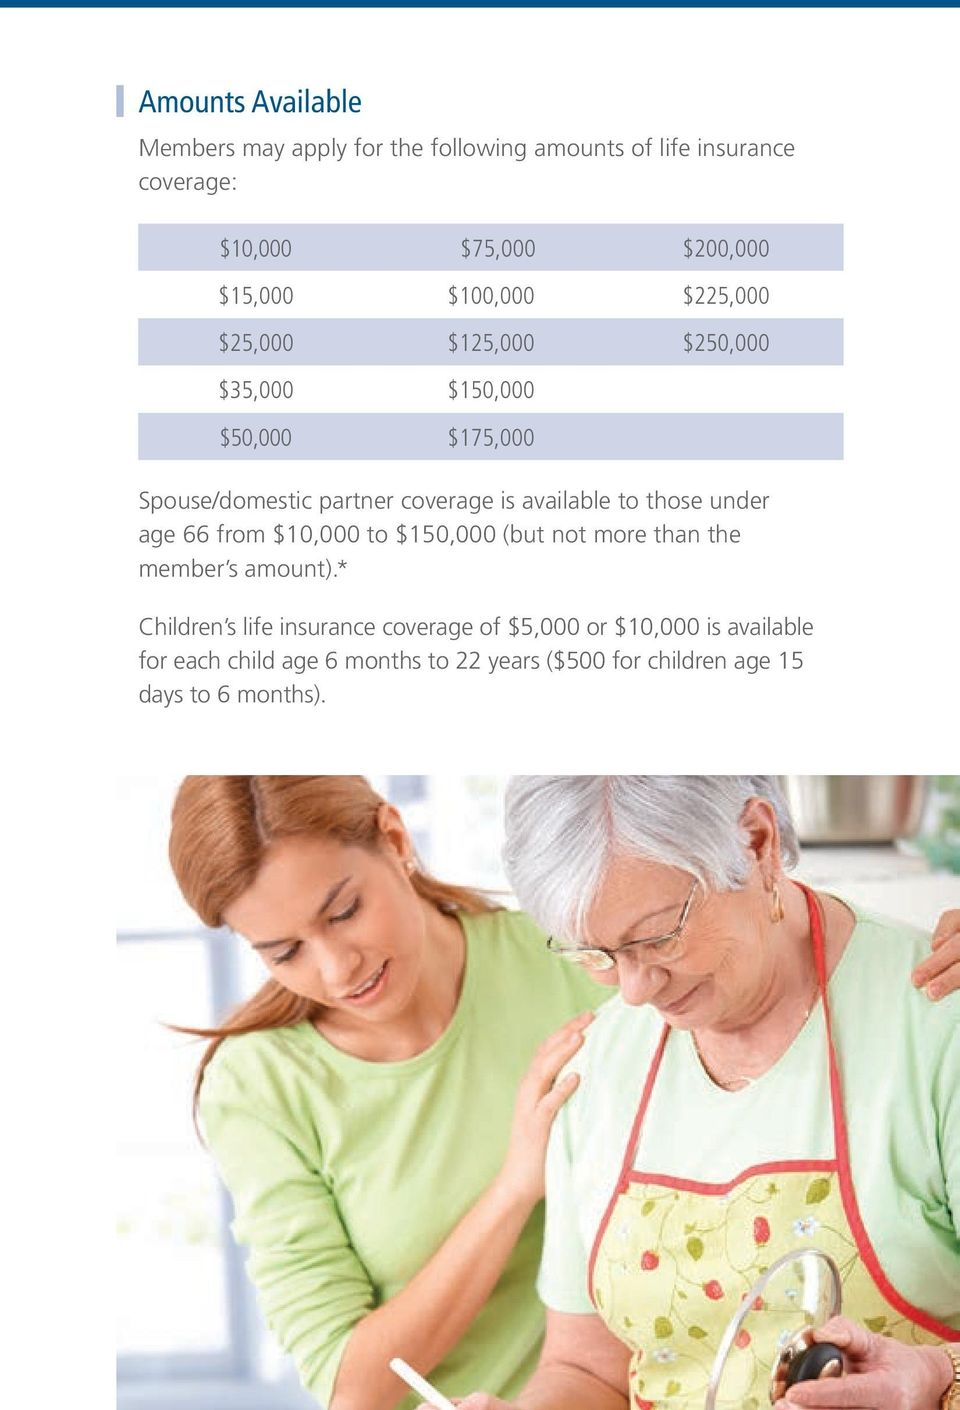 available to those under age 66 from $10,000 to $150,000 (but not more than the member s amount).